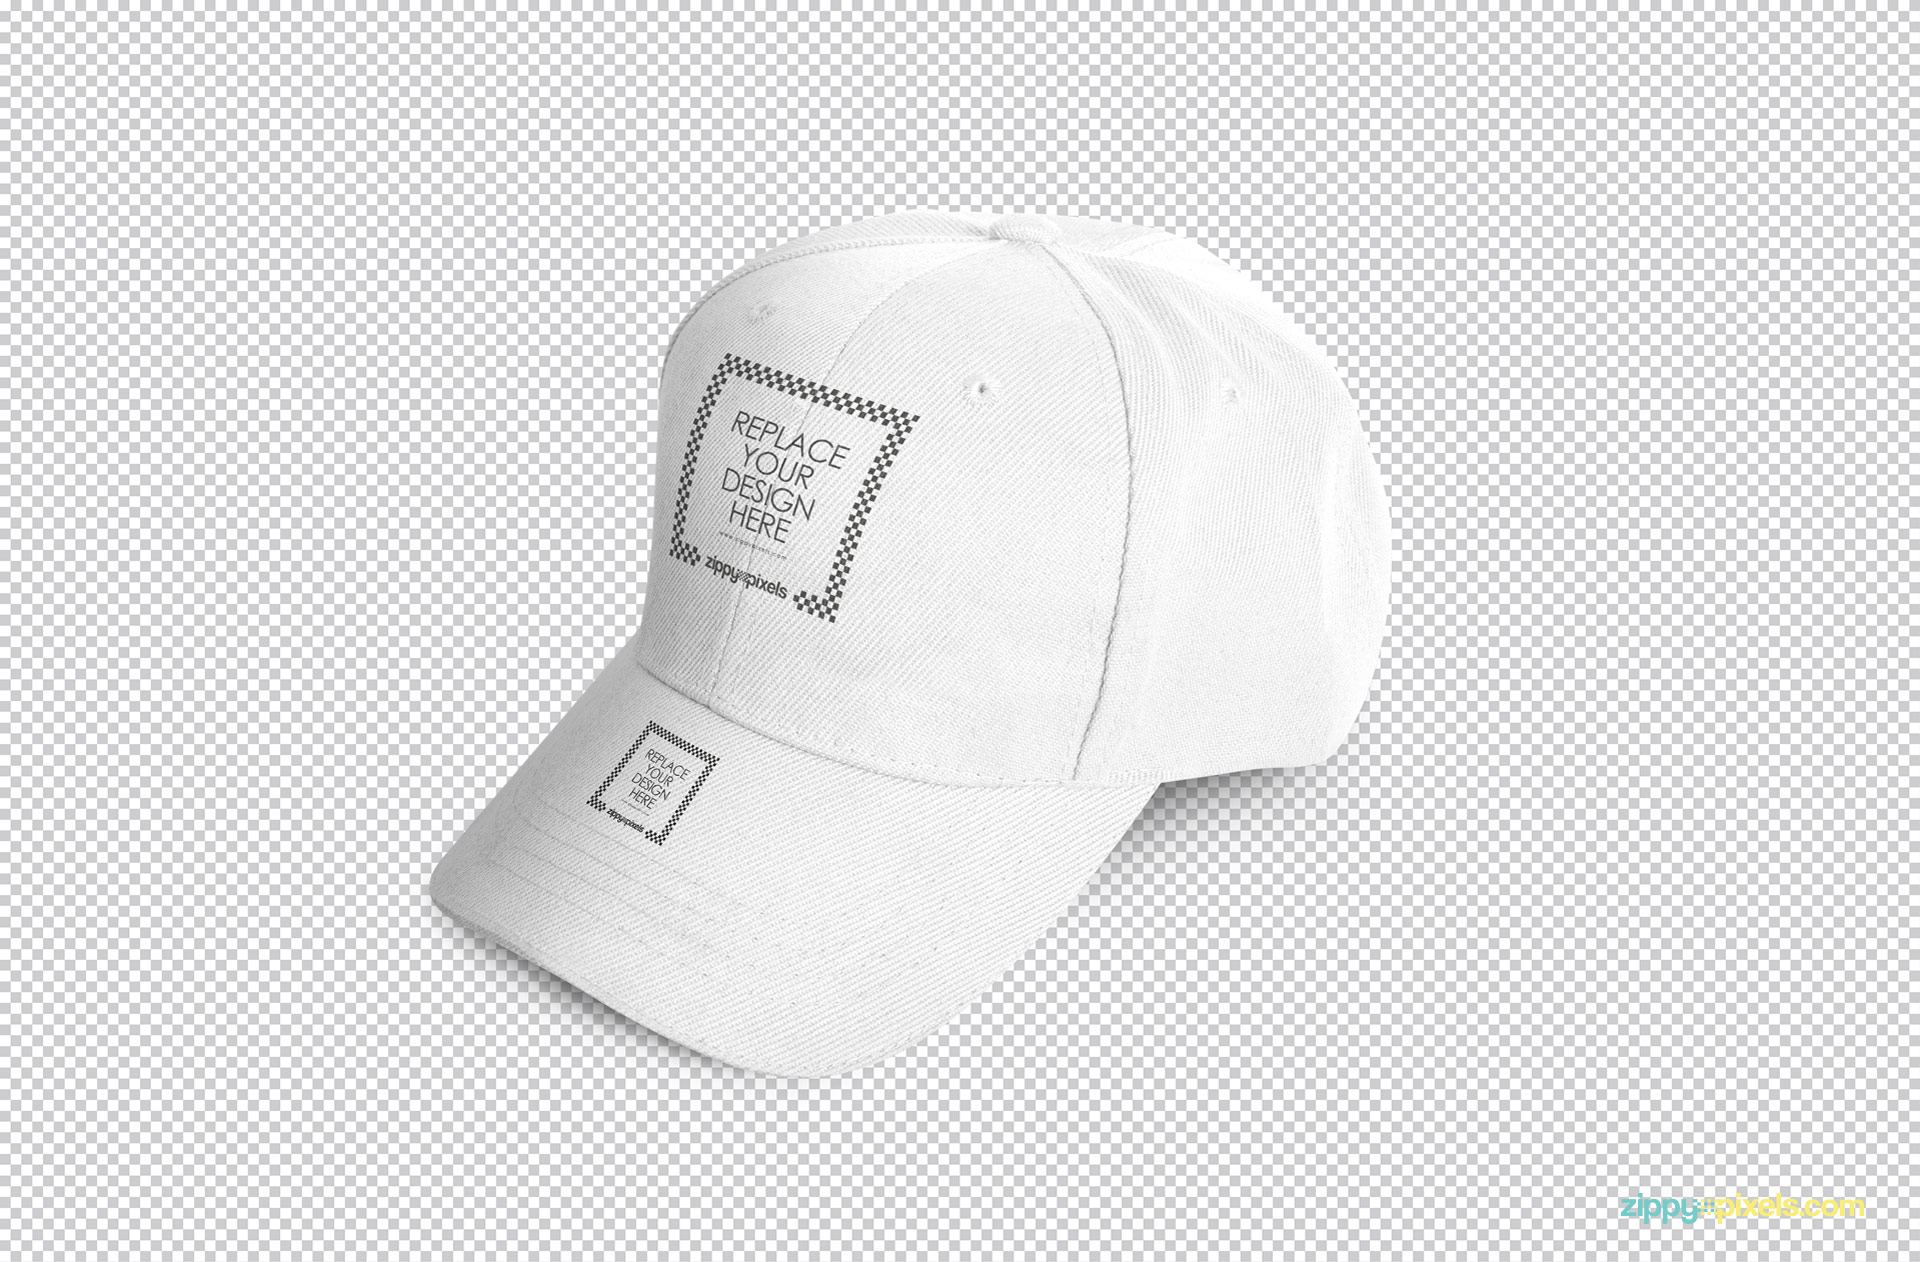 free dad hat mockup which offers endless customization options